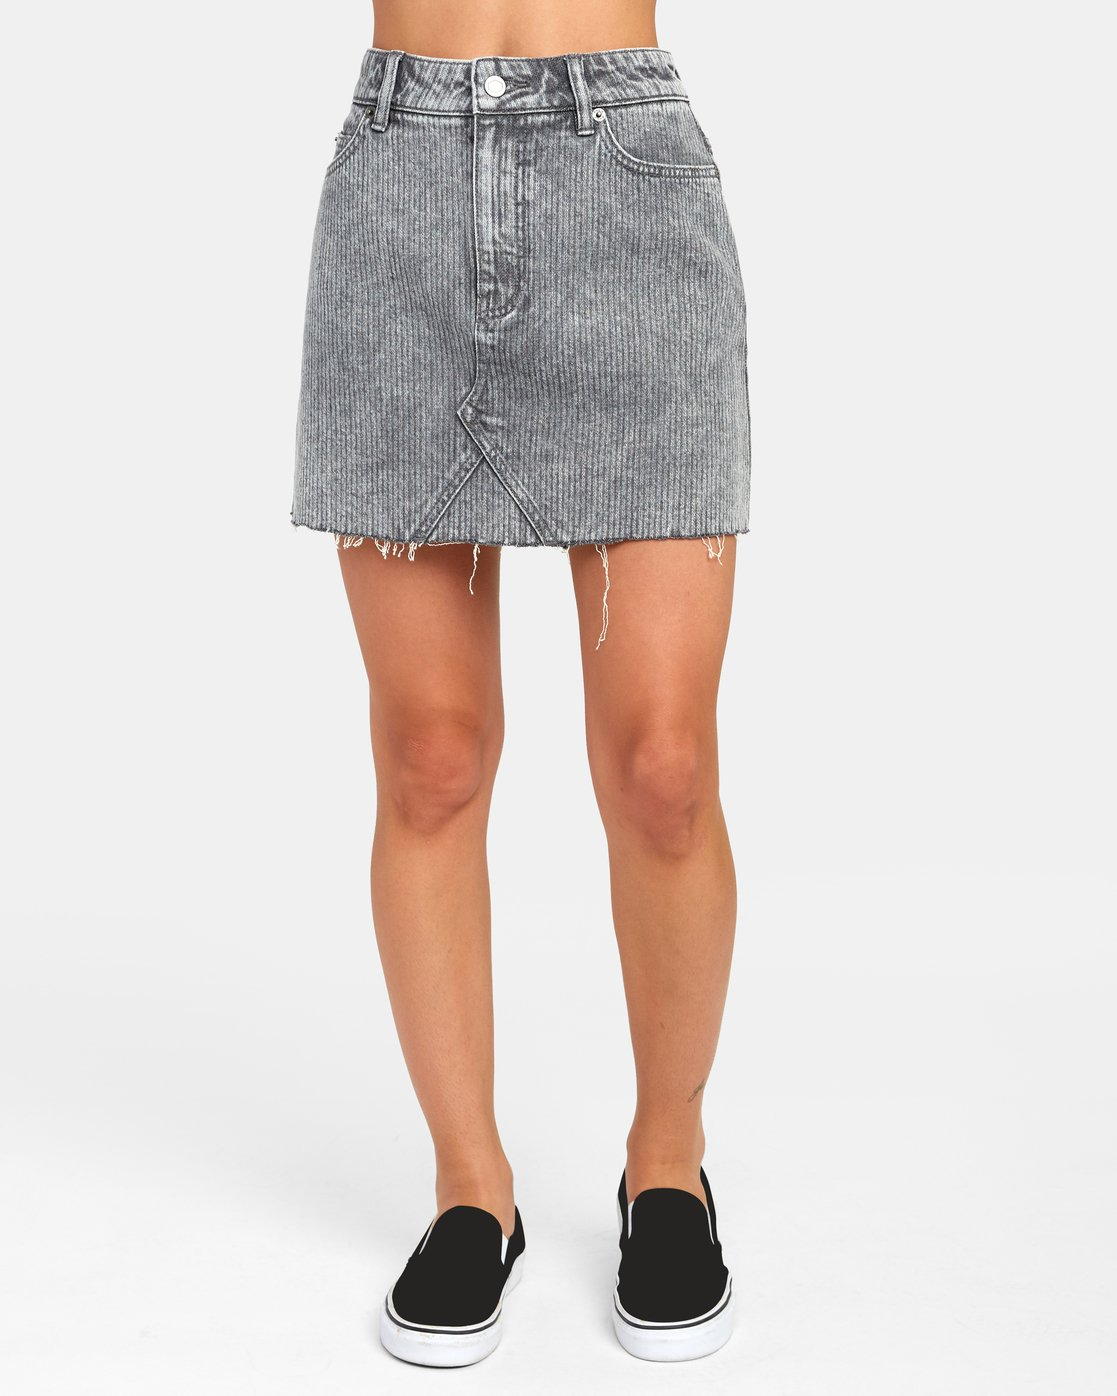 0 SIENA HIGH RISE DENIM SKIRT Multicolor WK02VRSI RVCA